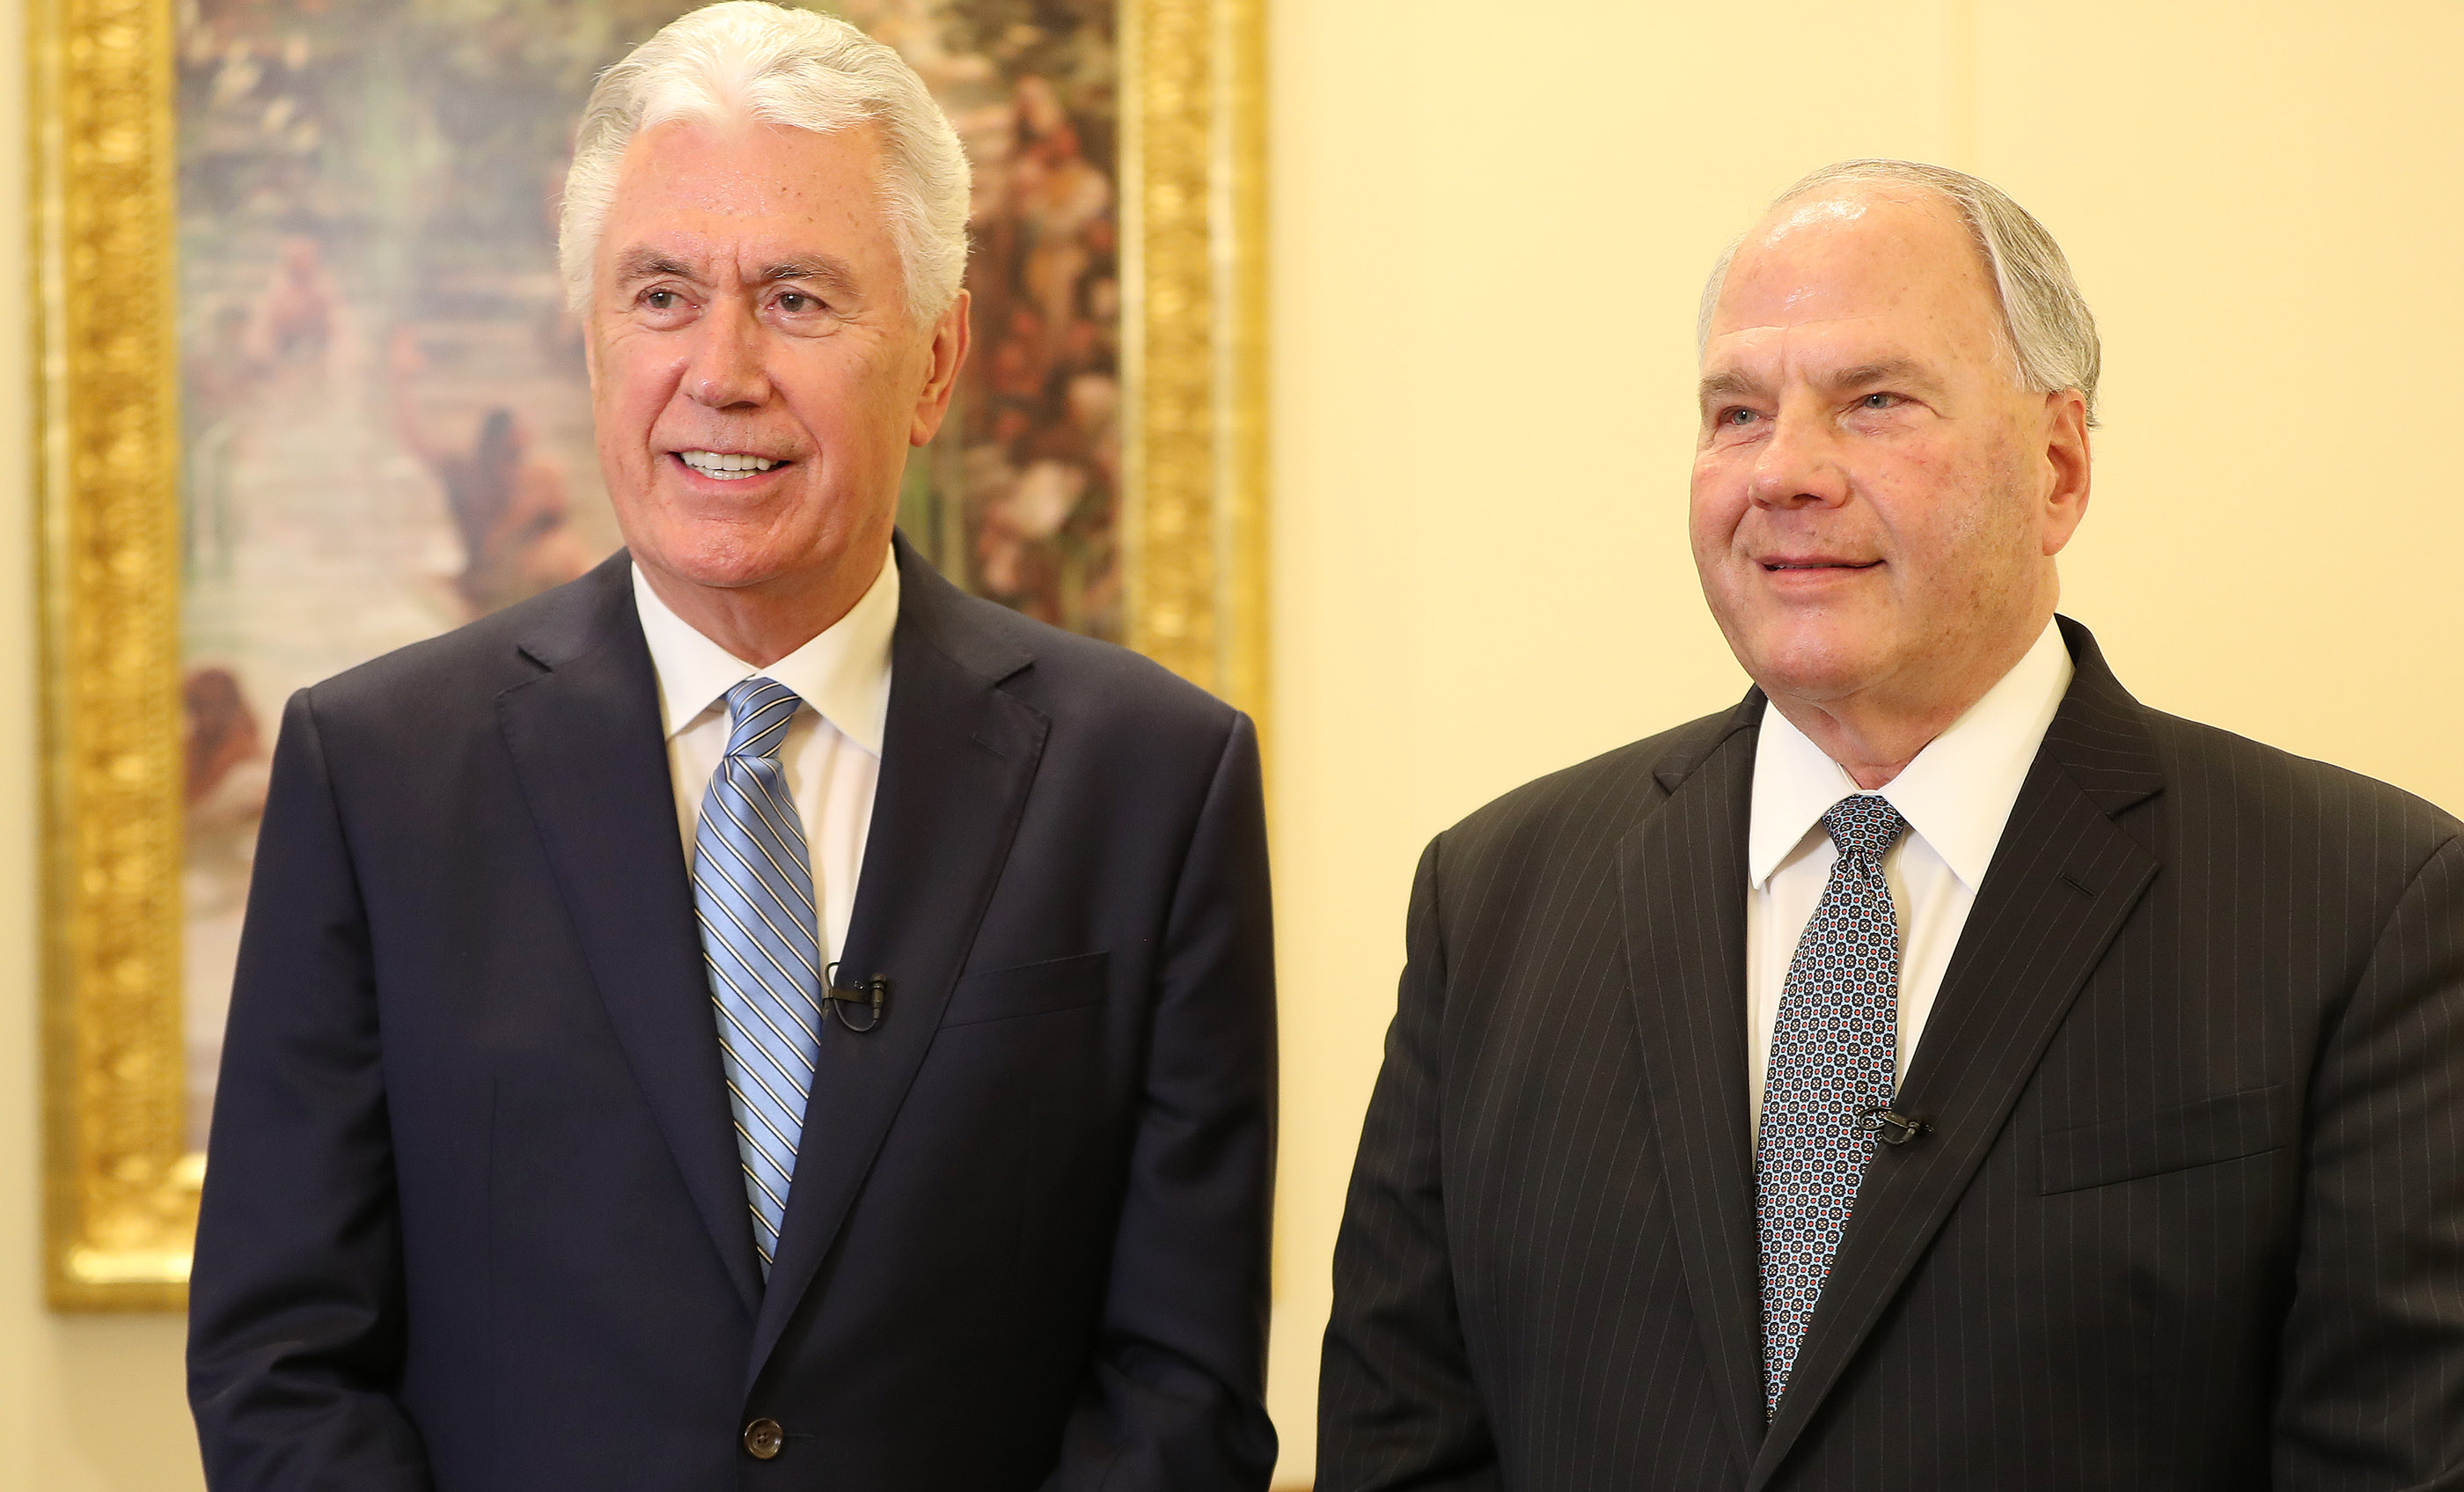 Elder Dieter F. Uchtdorf and Elder Ronald A. Rasband of the Quorum of the Twelve Apostles speak to media after the dedication of the Rome Italy Temple in Rome, Italy, on Sunday, March 10, 2019.